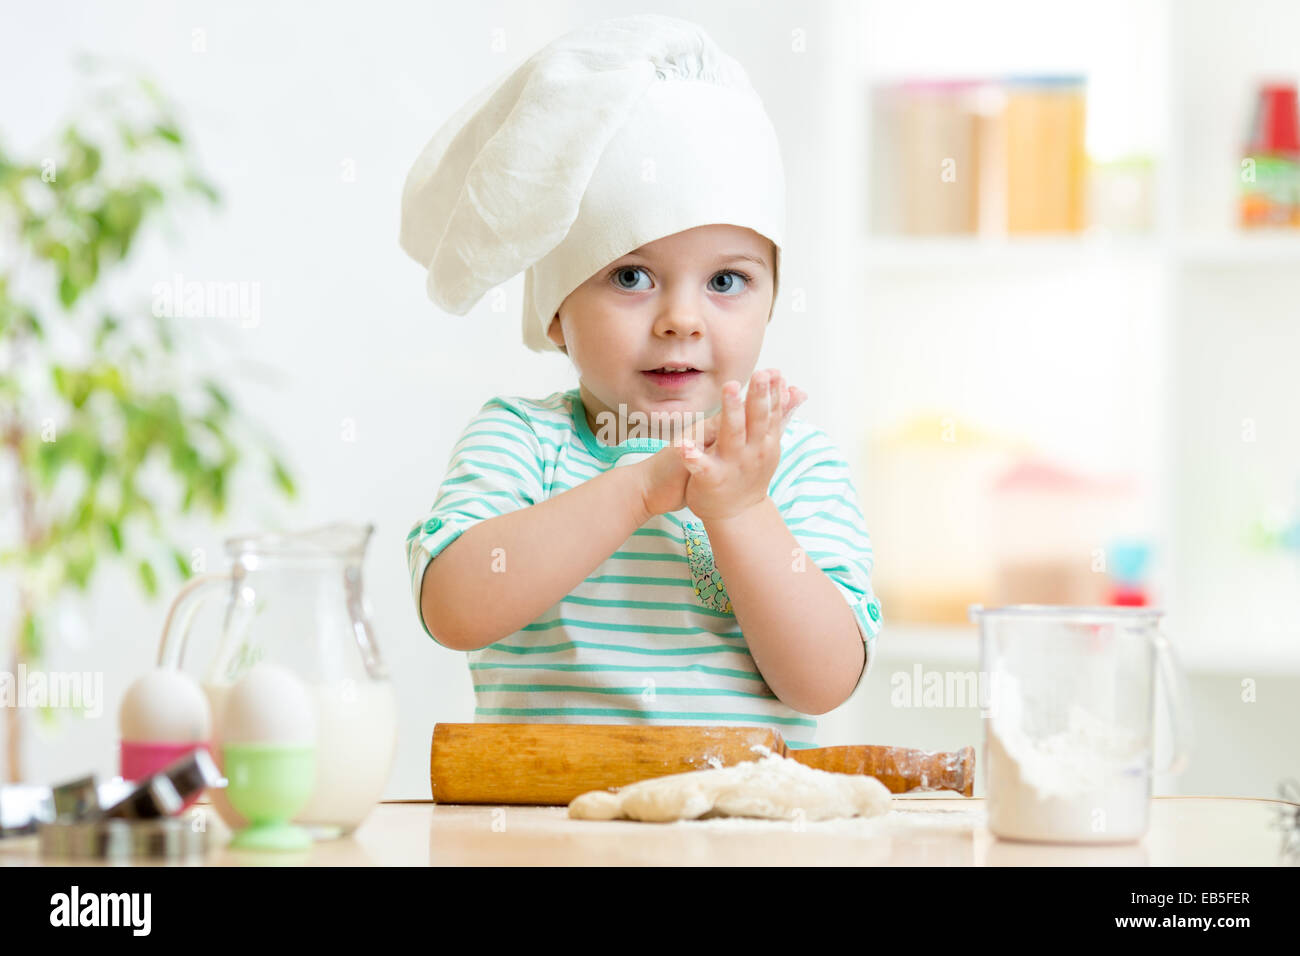 83ce9604be7 Baby Chef Little Baby In Stock Photos   Baby Chef Little Baby In ...